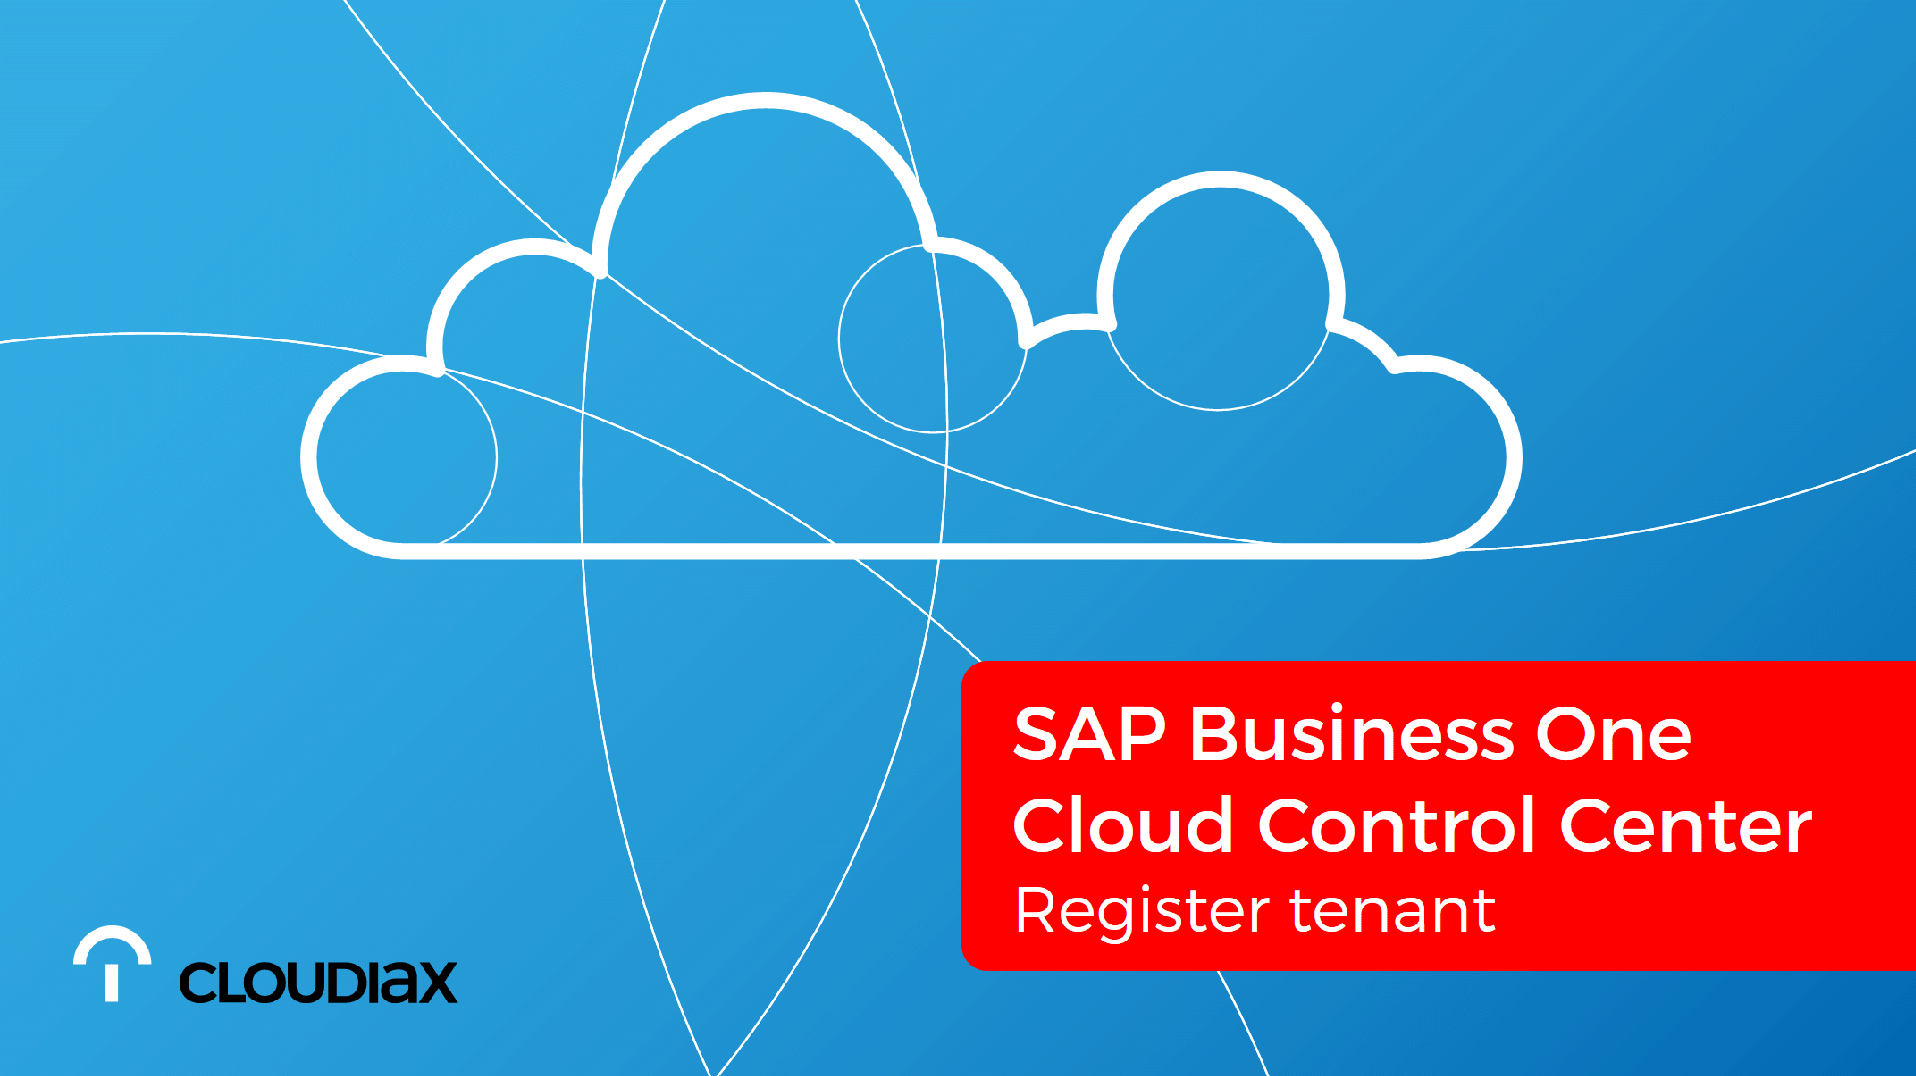 SAP Business One Cloud Control Center - Register tenant